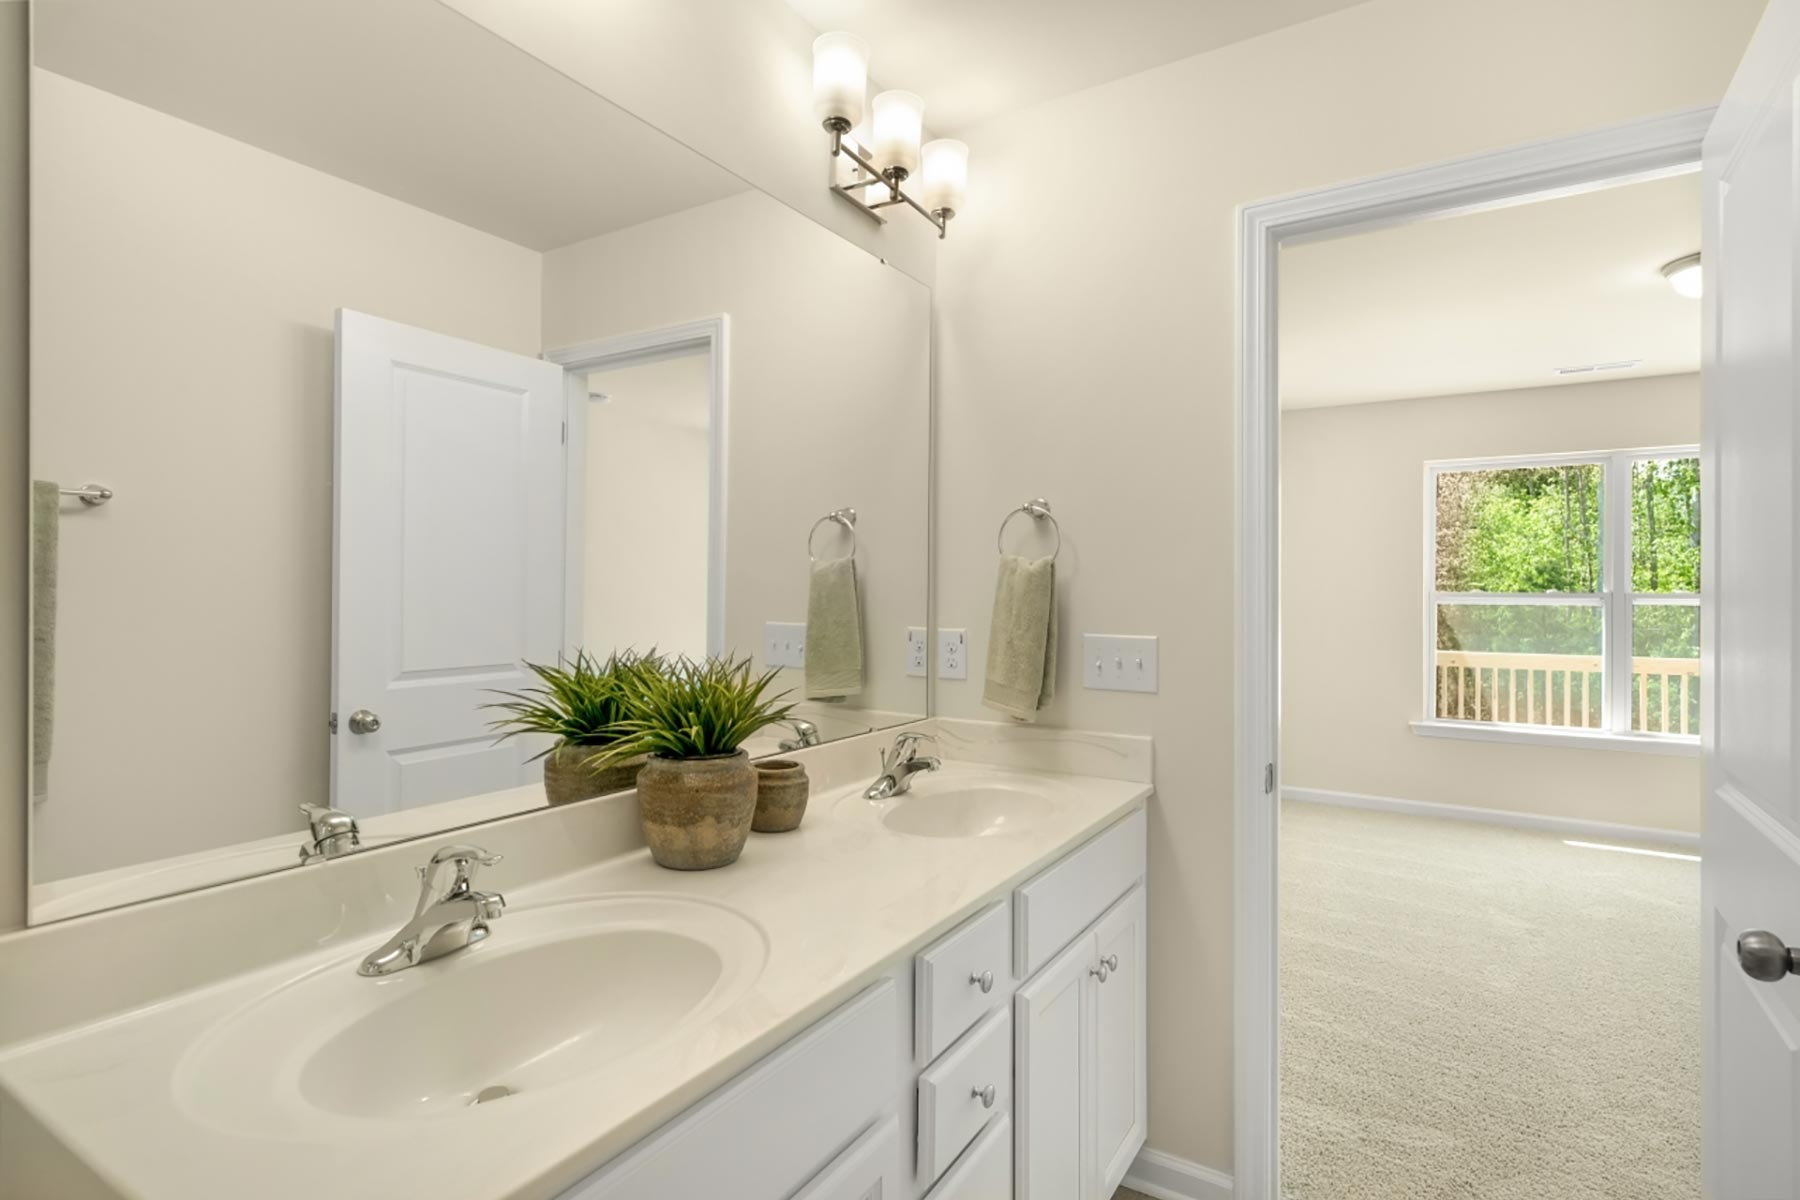 Osborn Plan Bath at Bengal Townes in Fuquay-Varina North Carolina by Mattamy Homes